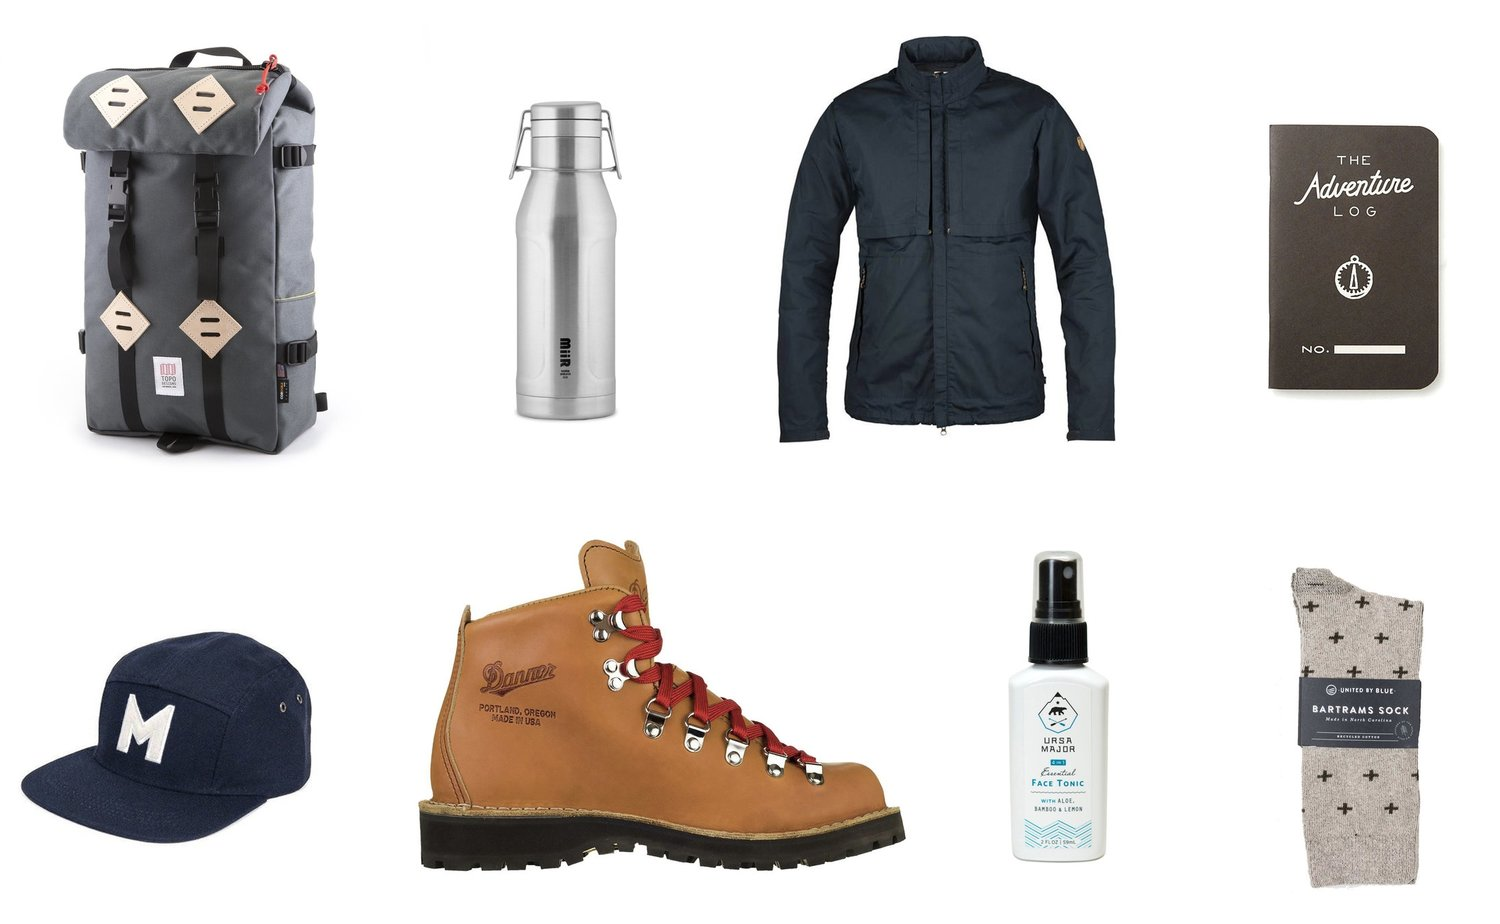 1)  Topo Designs Klettersack in Charcoal  2)  Miir Heritage Howler in Stainless Steel  3)  Fjallraven Travelers Jacket  4)  The Adventure Log by Word. Notebooks in Black  5)  Danner Portland Select Mountain Light Boot  6)  Ursa Major 4-in-1 Essential Face Tonic  7)  United by Blue Byers Bartrams Sock